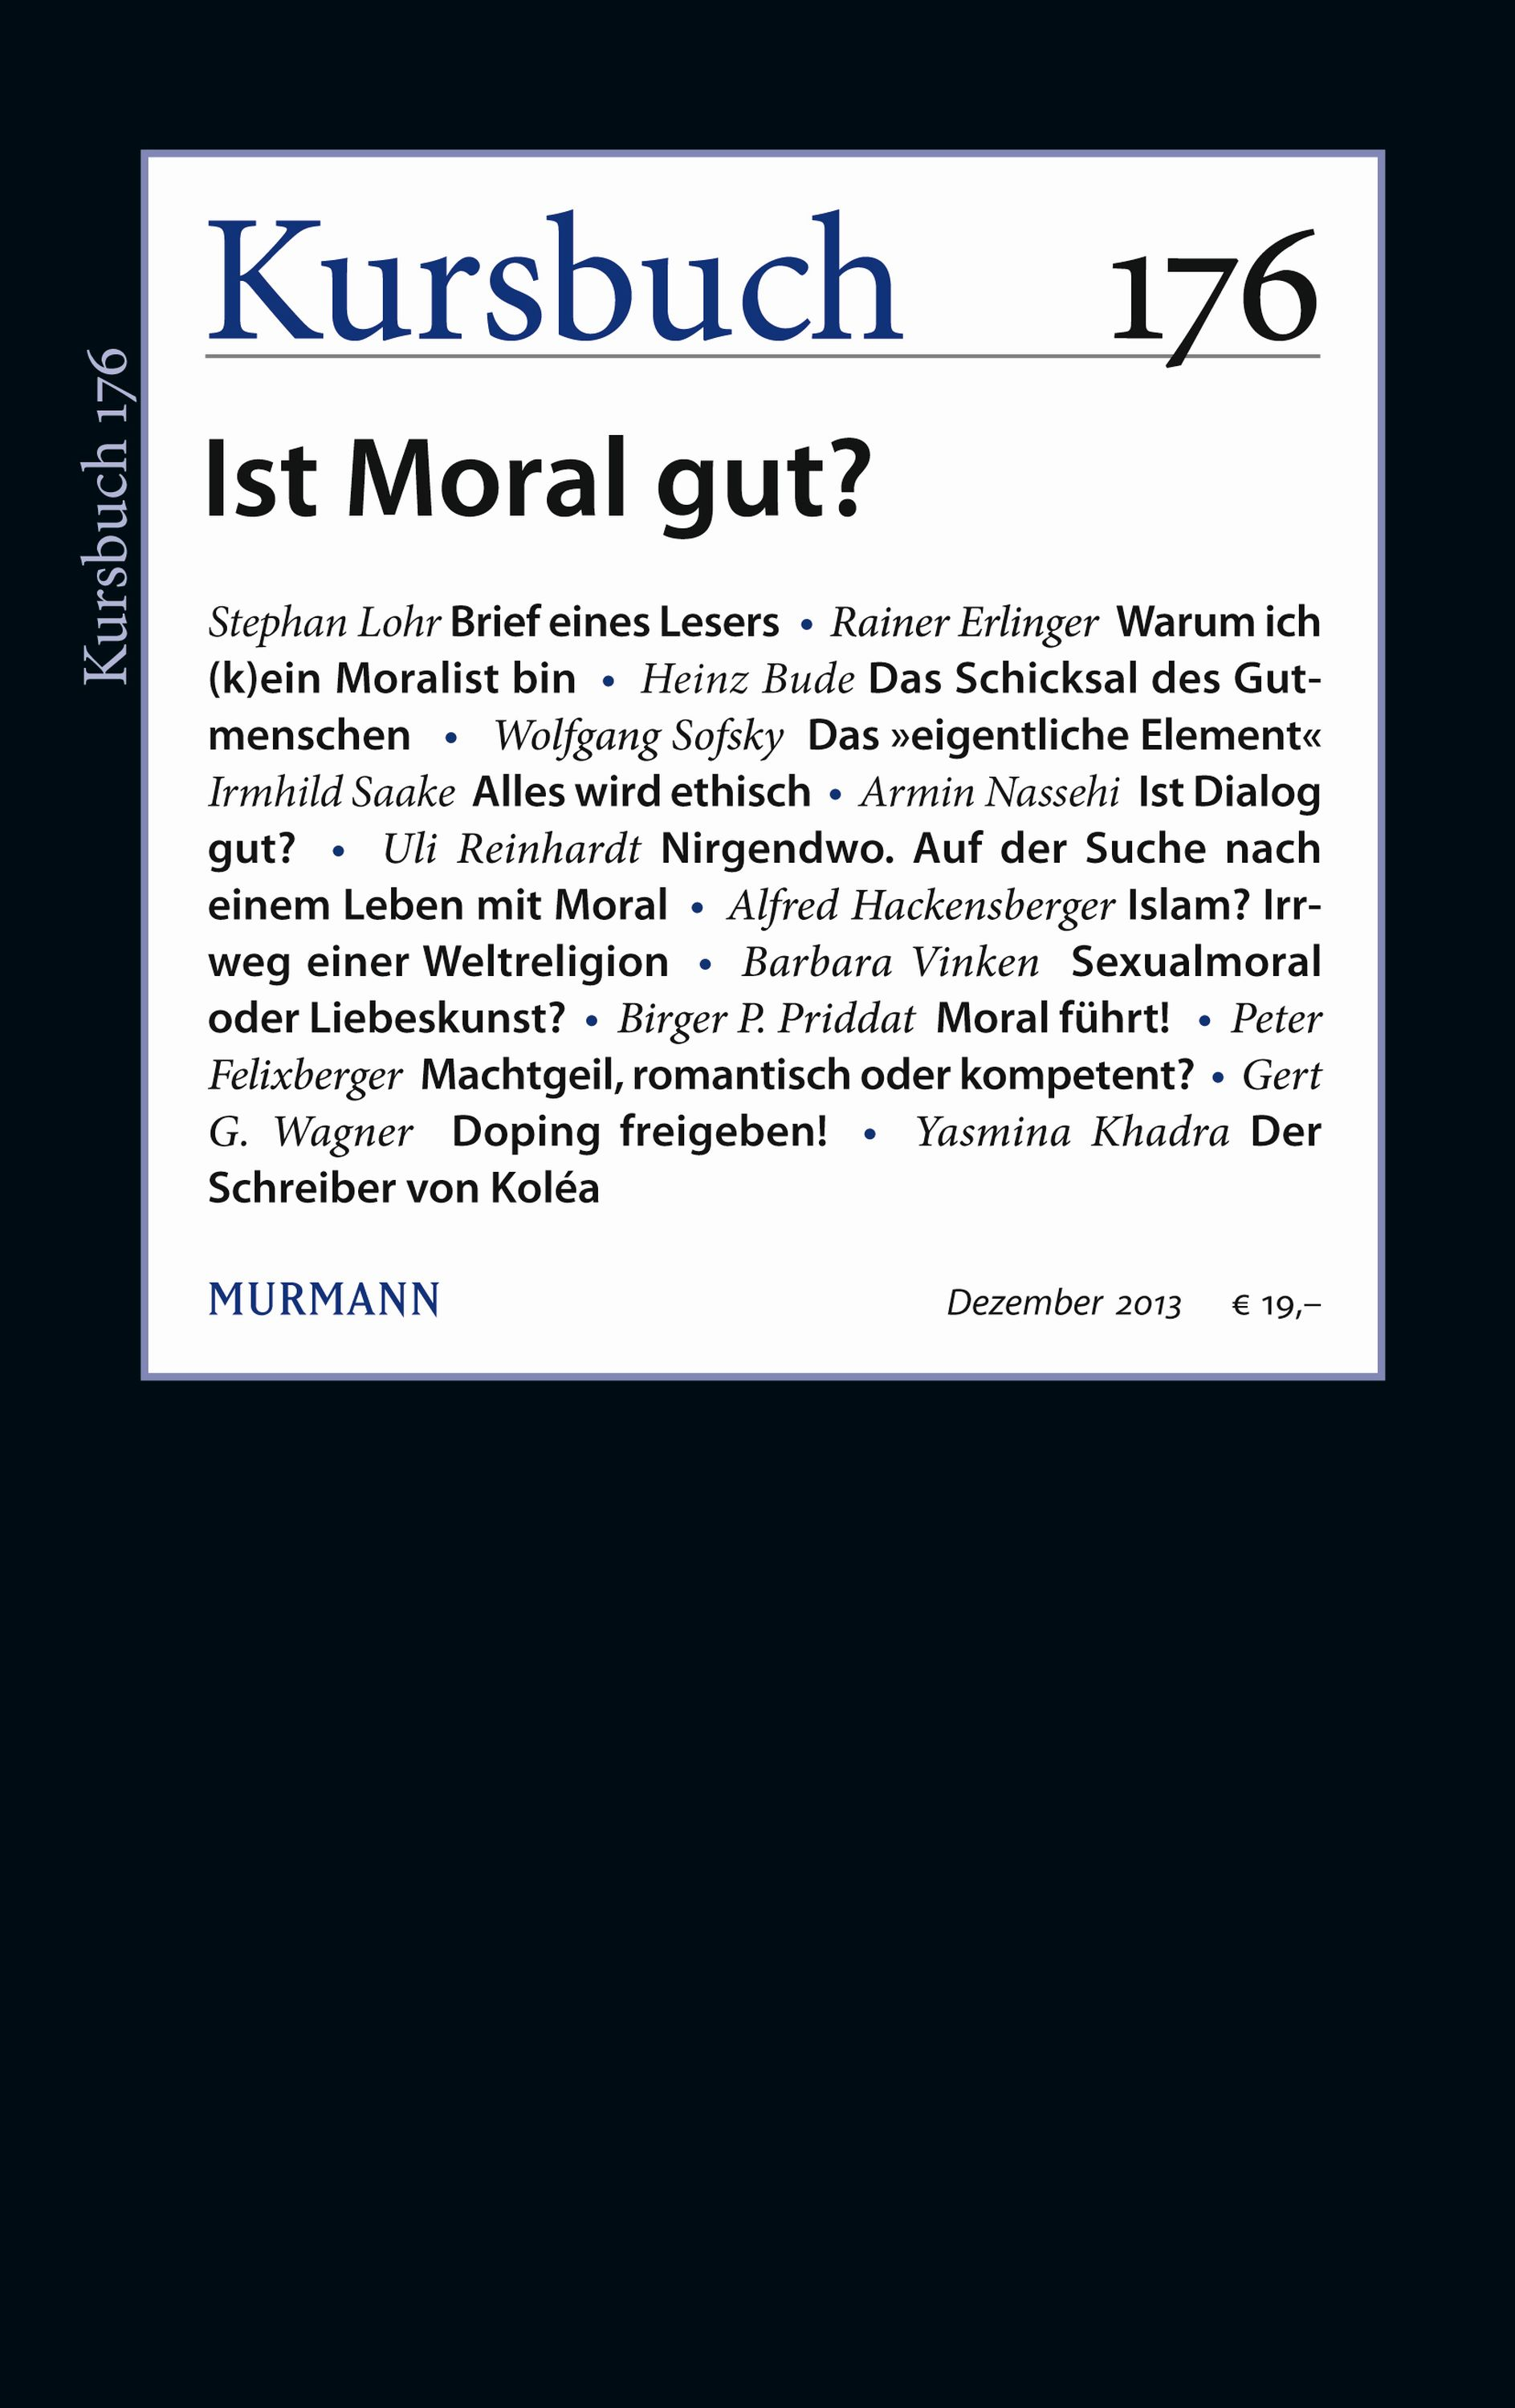 Kursbuch 176 – Editorial